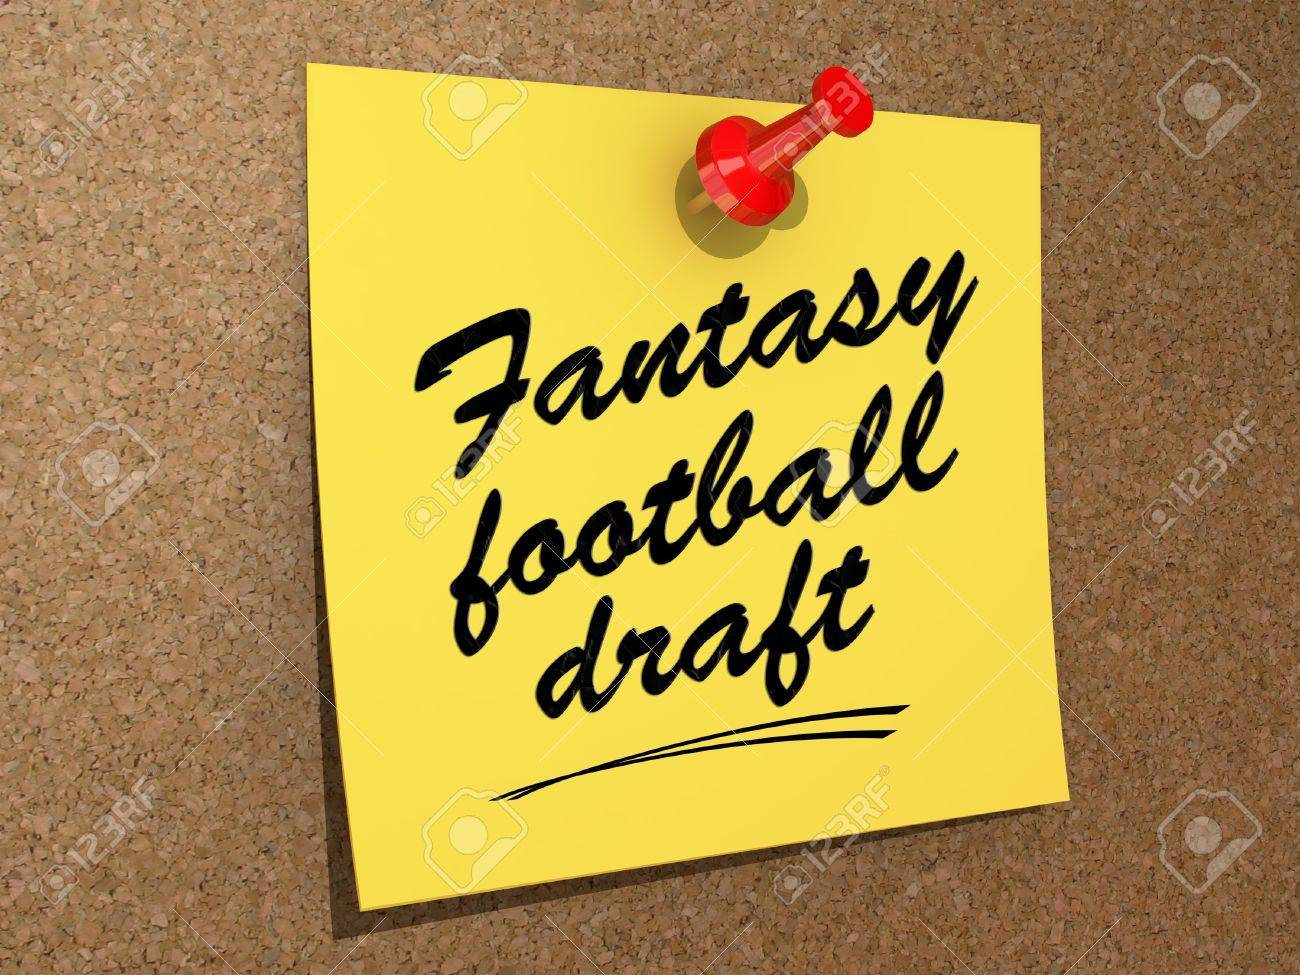 A note pinned to a cork board with the text Fantasy Football Draft Stock Photo - 19327543